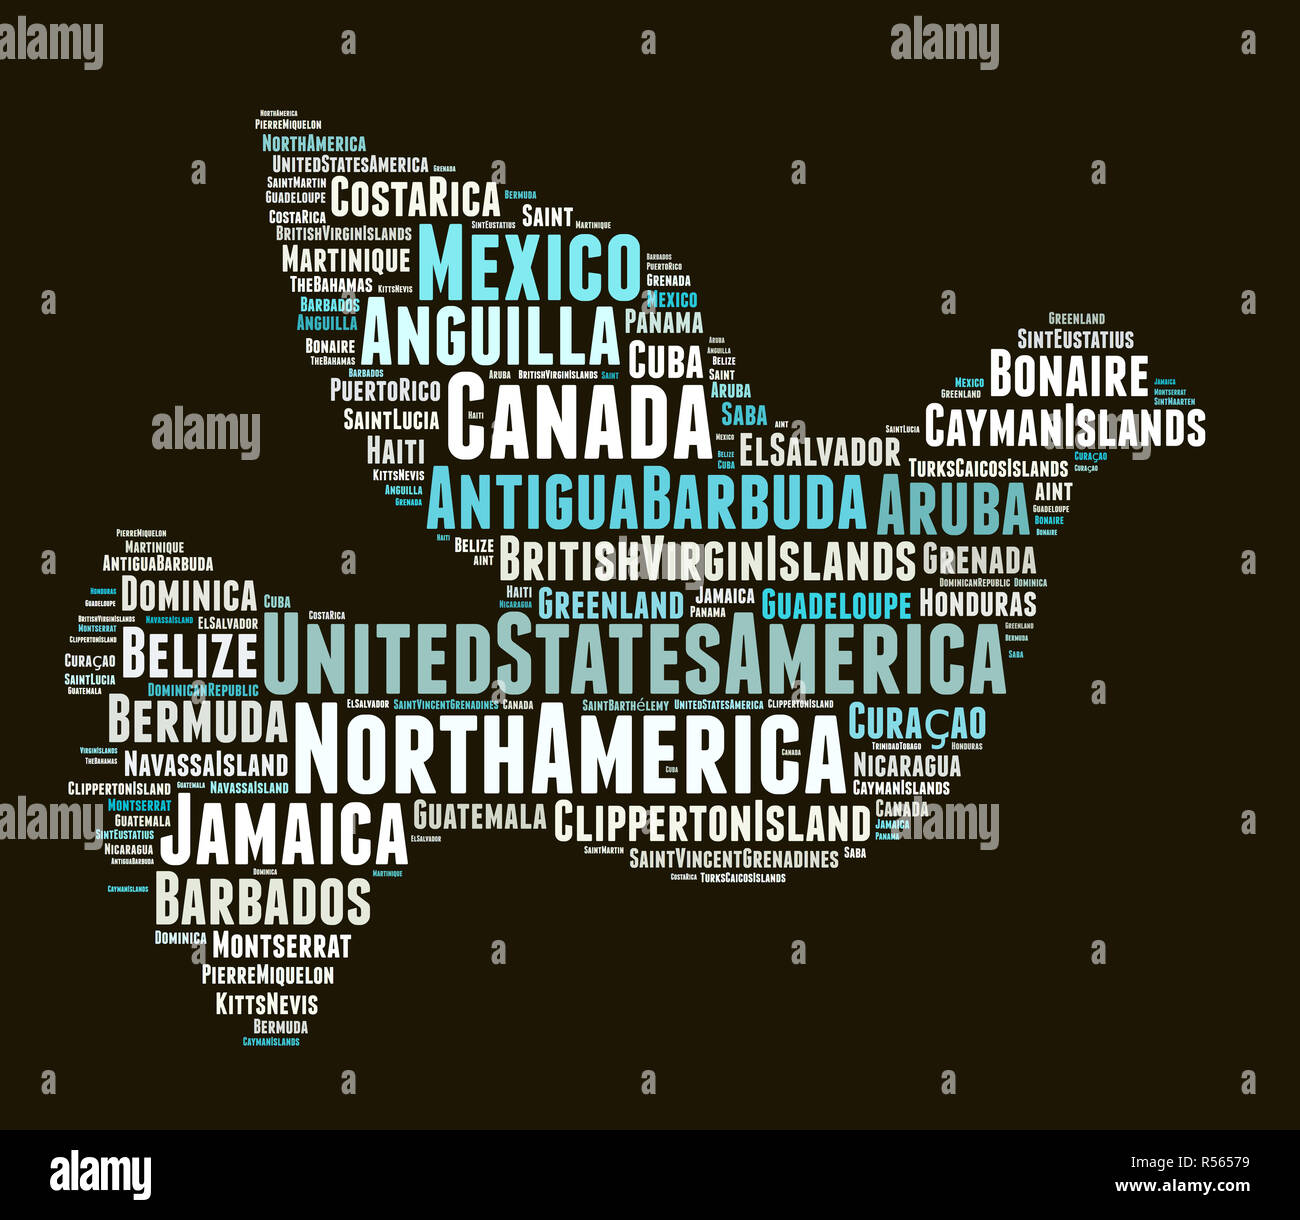 States and territories in North America - Stock Image